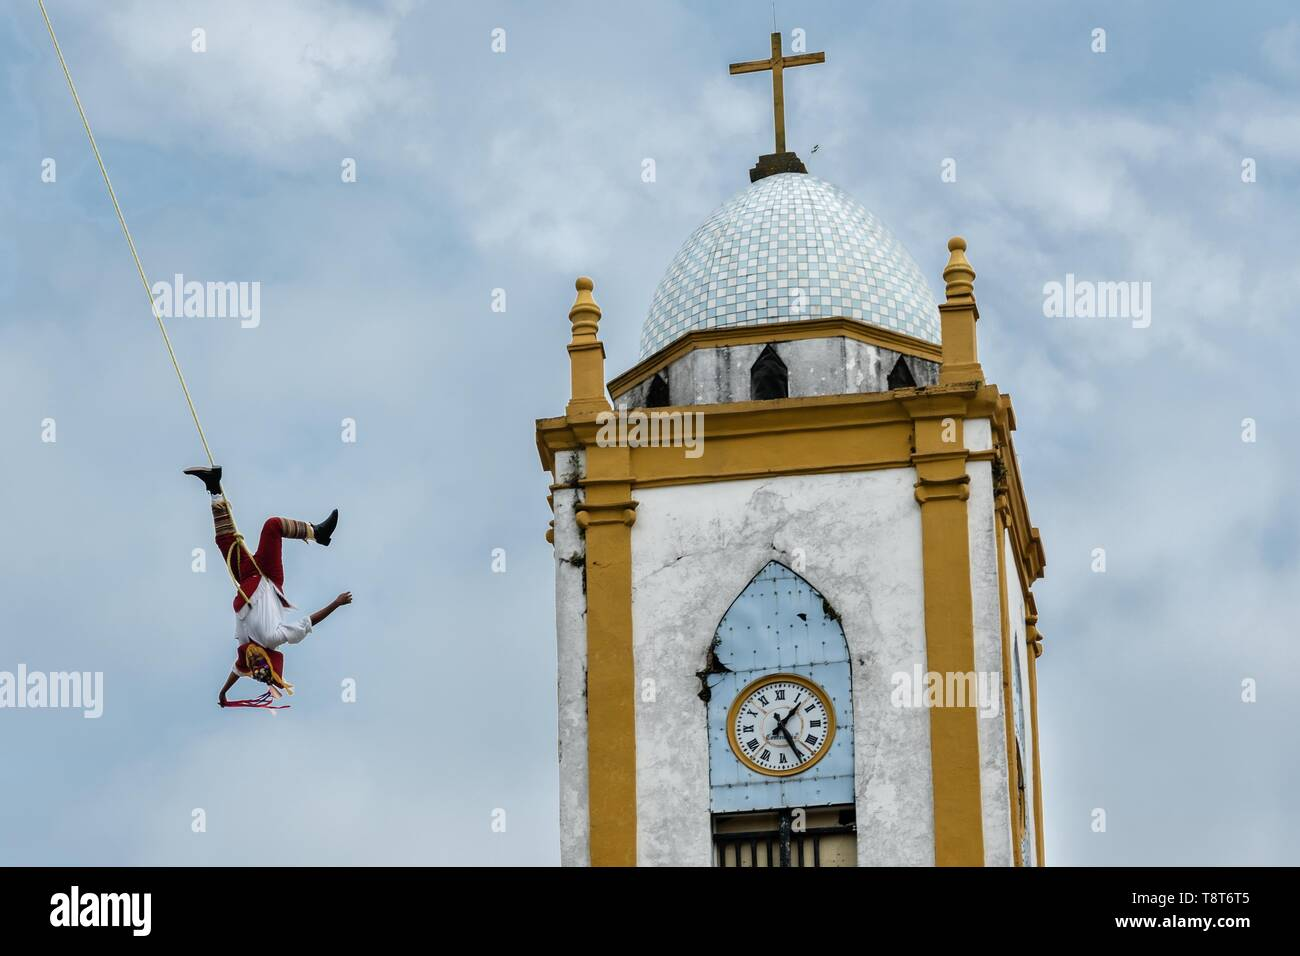 A Volador performs in front of the Church of the Assumption in Papantla, Veracruz, Mexico. The Danza de los Voladores is a indigenous Totonac ceremony involving five participants who climb a thirty-meter pole. Four of these tie ropes around their waists and wind the other end around the top of the pole in order to descend to the ground. The fifth participant stays at the top of the pole, playing a flute and a small drum. The ceremony has been inscribed as a Masterpiece of the Oral and Intangible Heritage of Humanity by UNESCO. - Stock Image